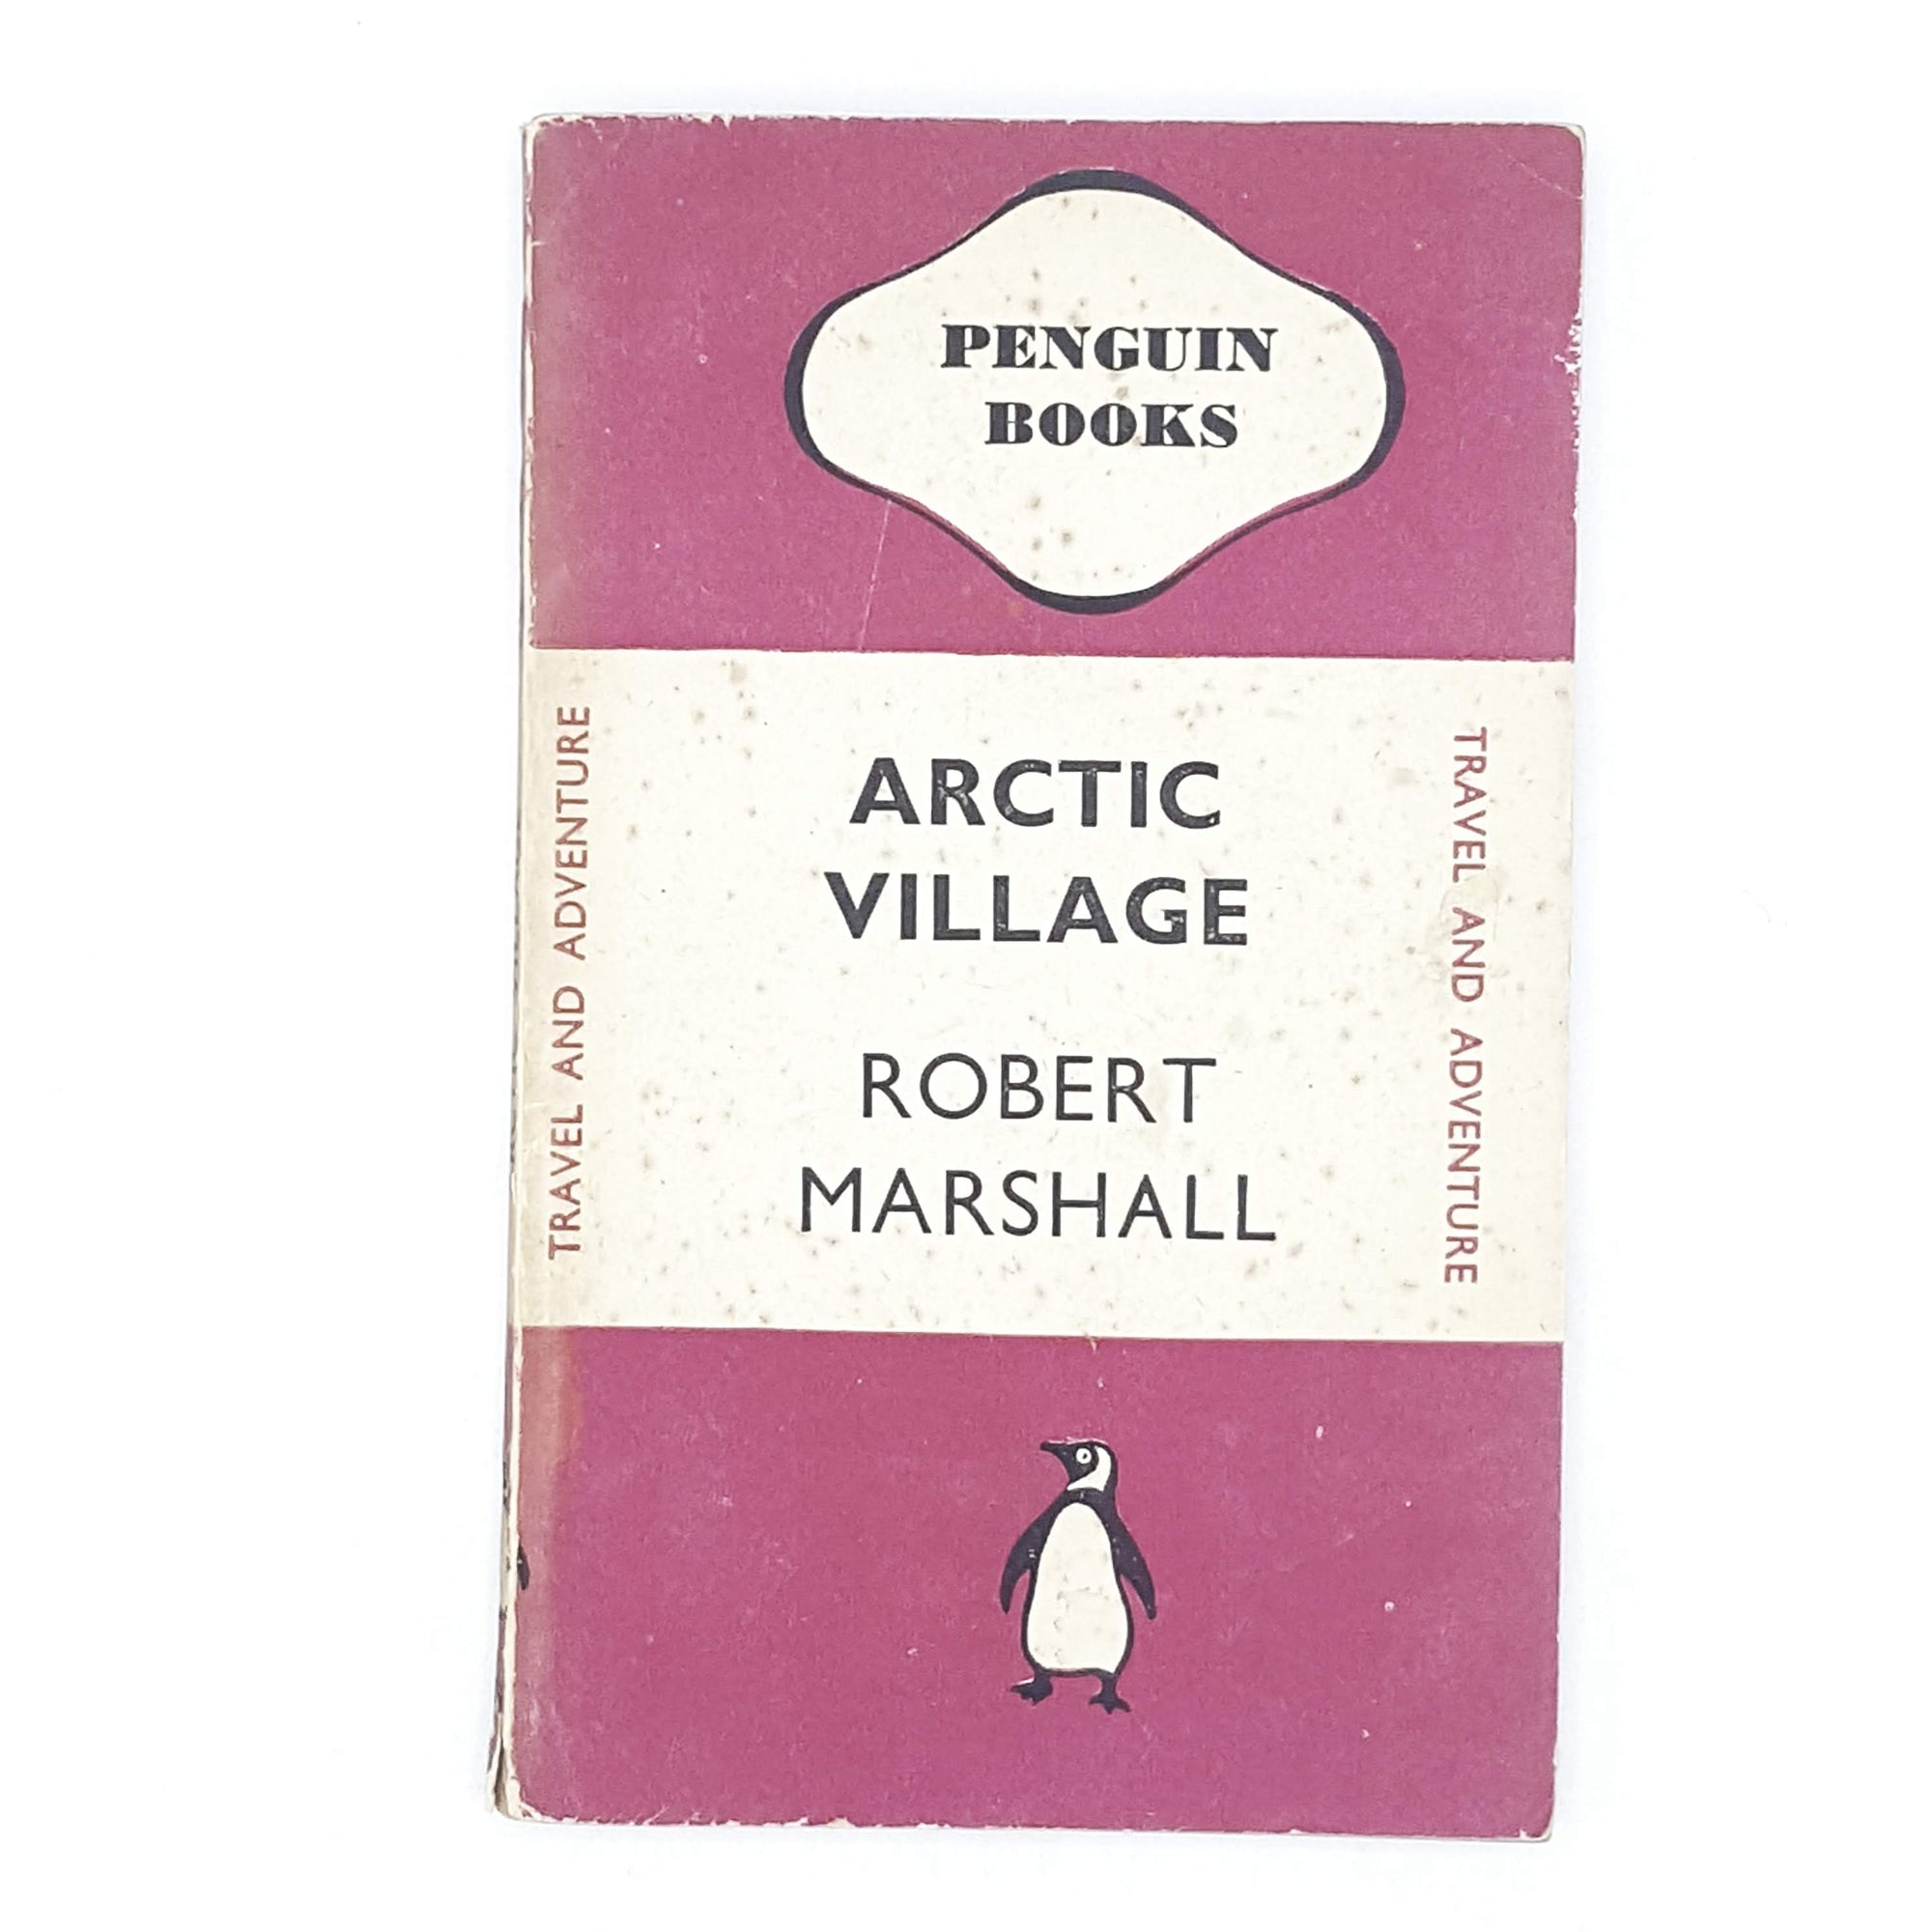 Artic Village by Robert Marshall 1940